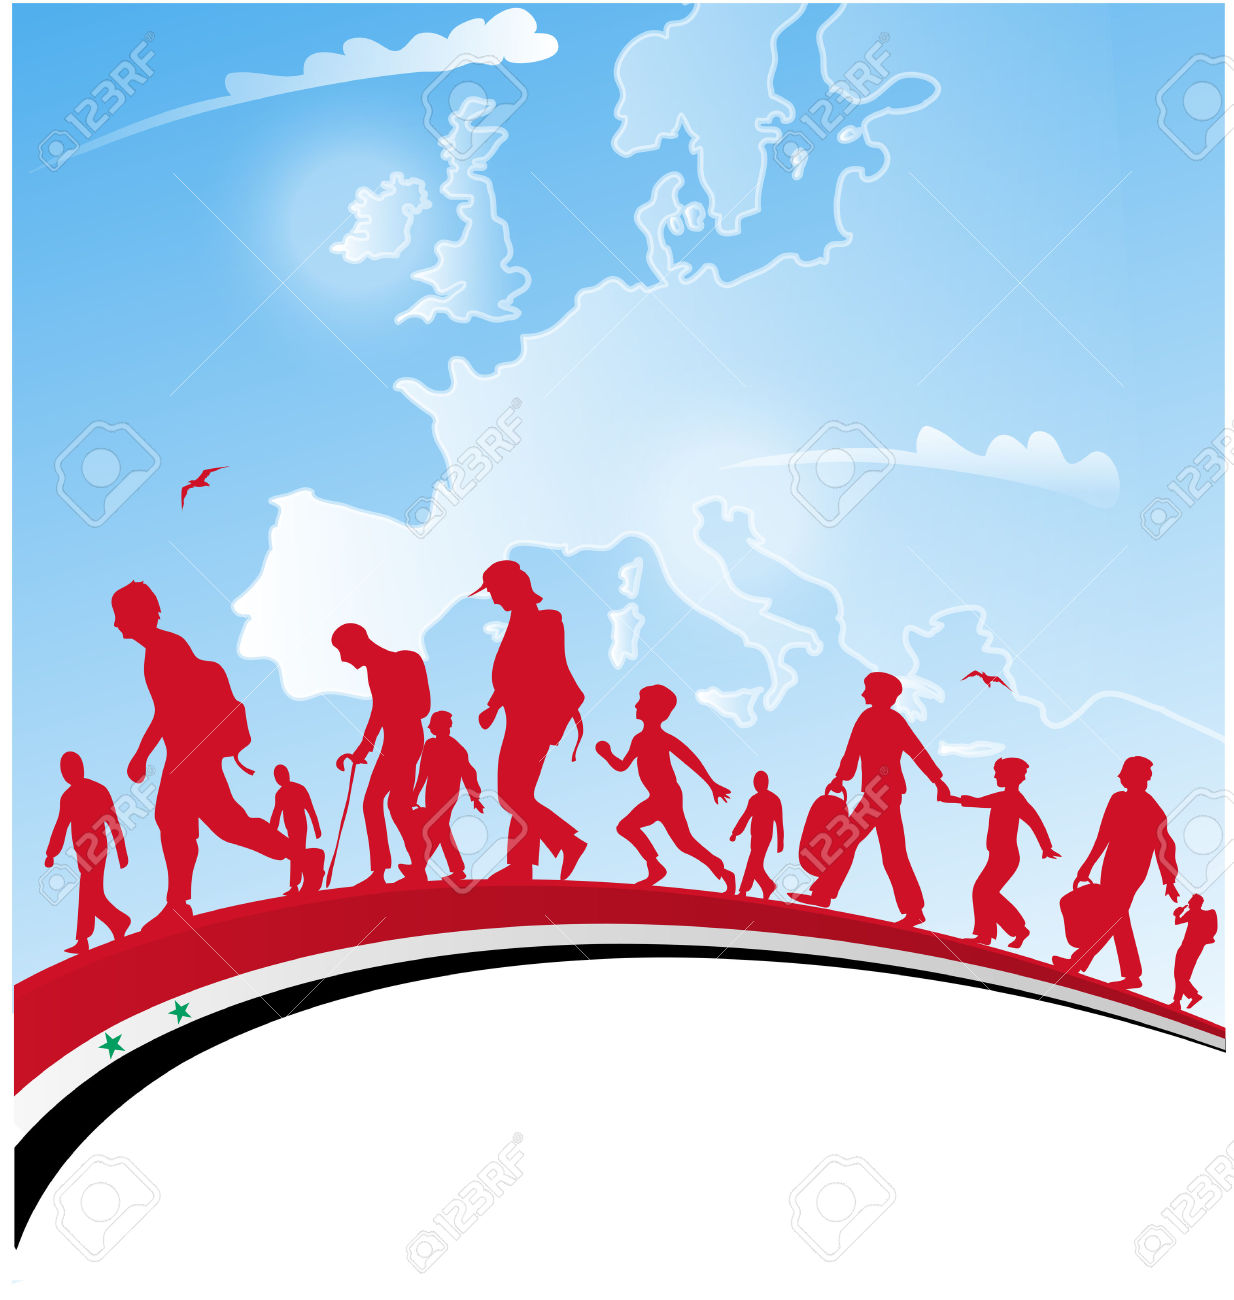 7,838 Immigration Stock Vector Illustration And Royalty Free.